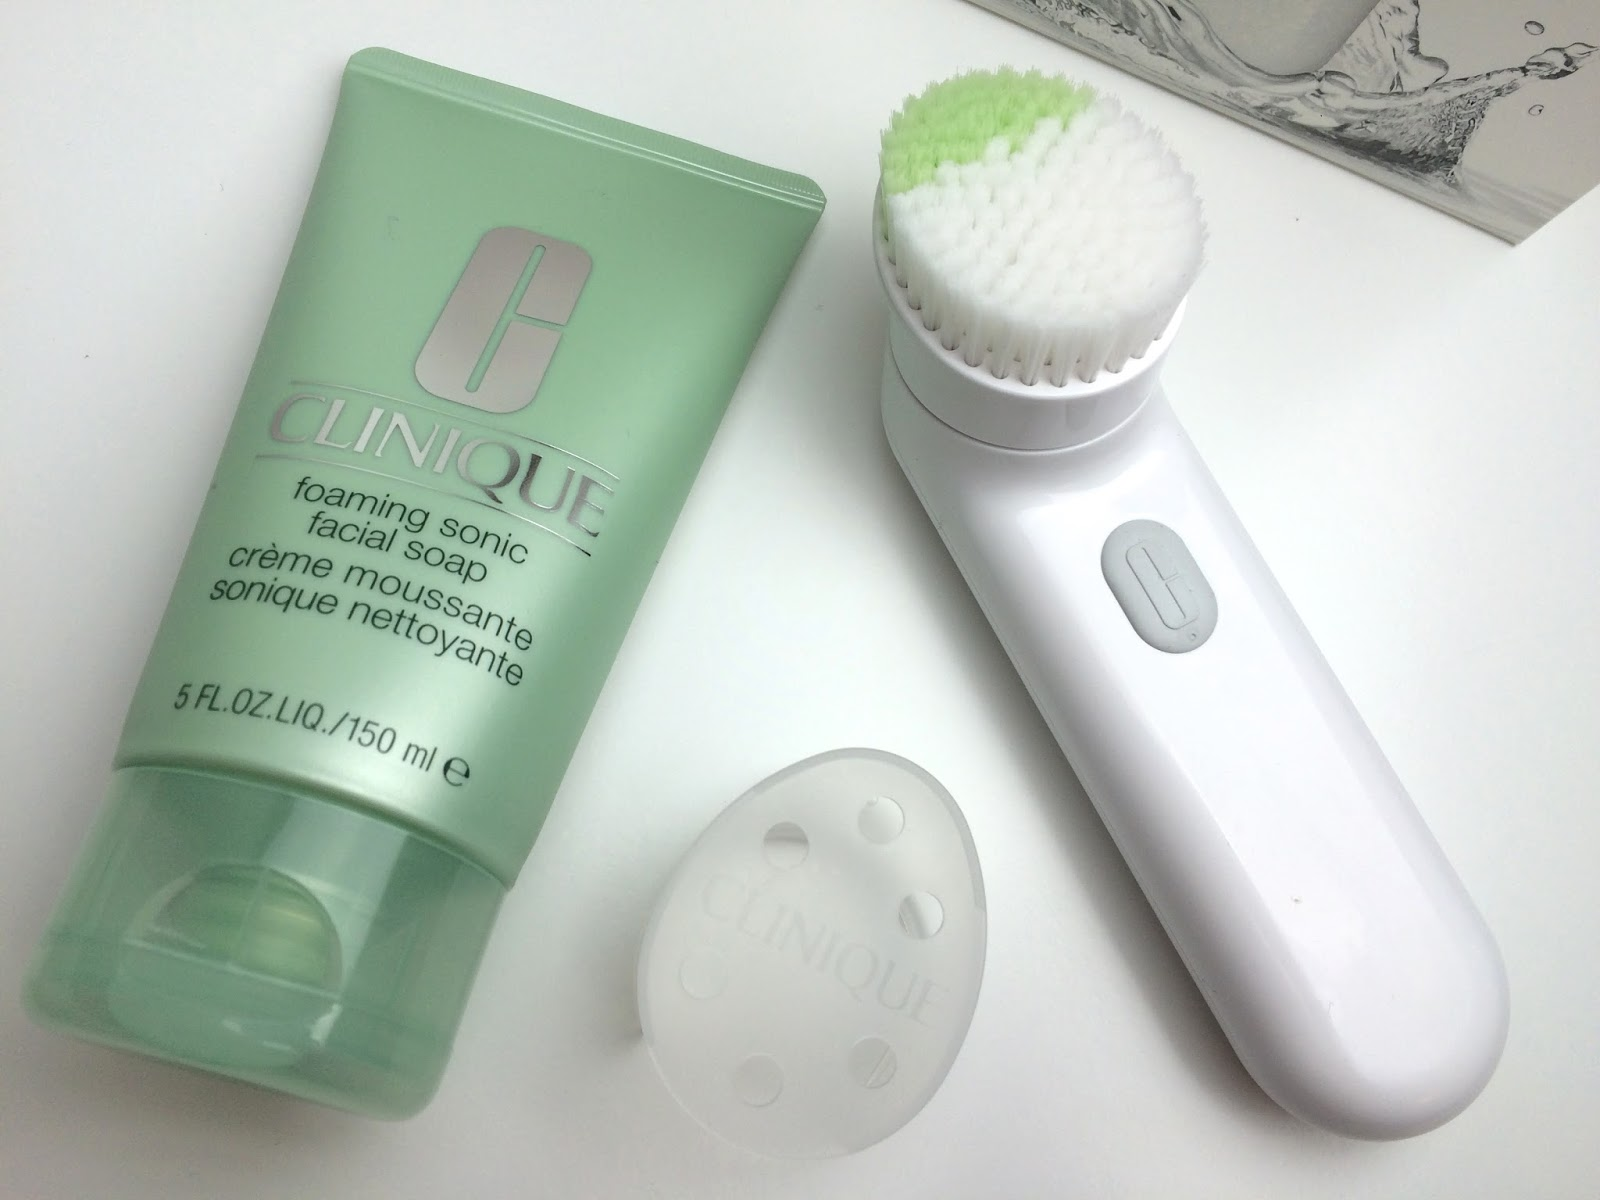 Clinique Sonic System & Sonic Facial Soap